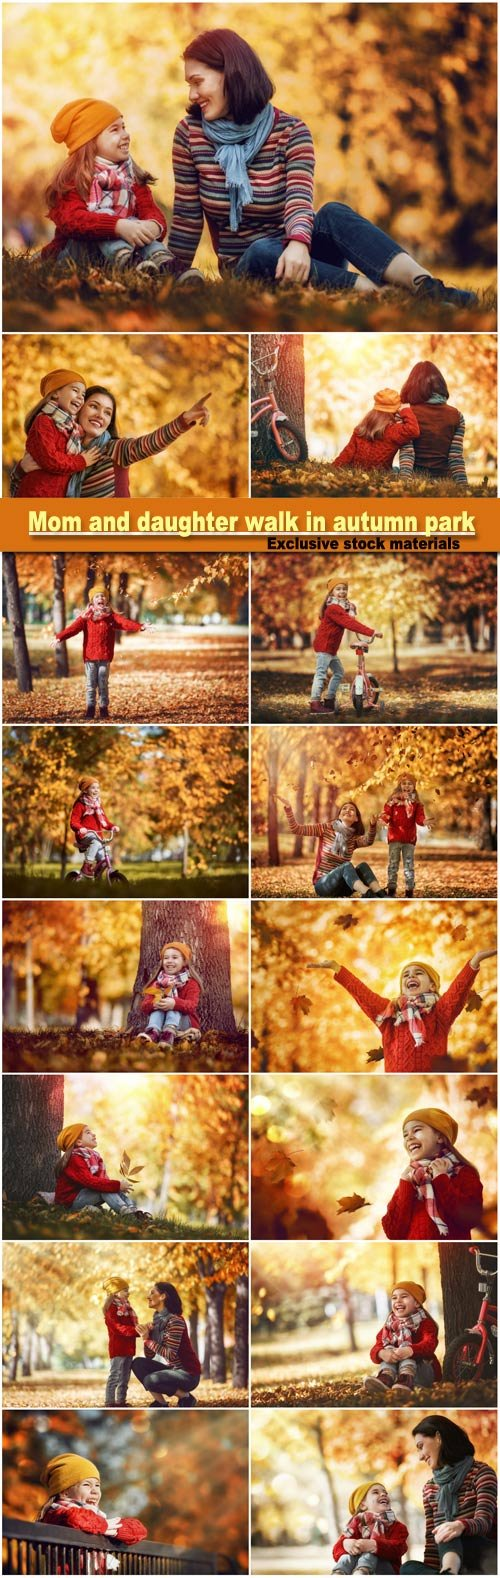 Mom and daughter walk in autumn park, happy family